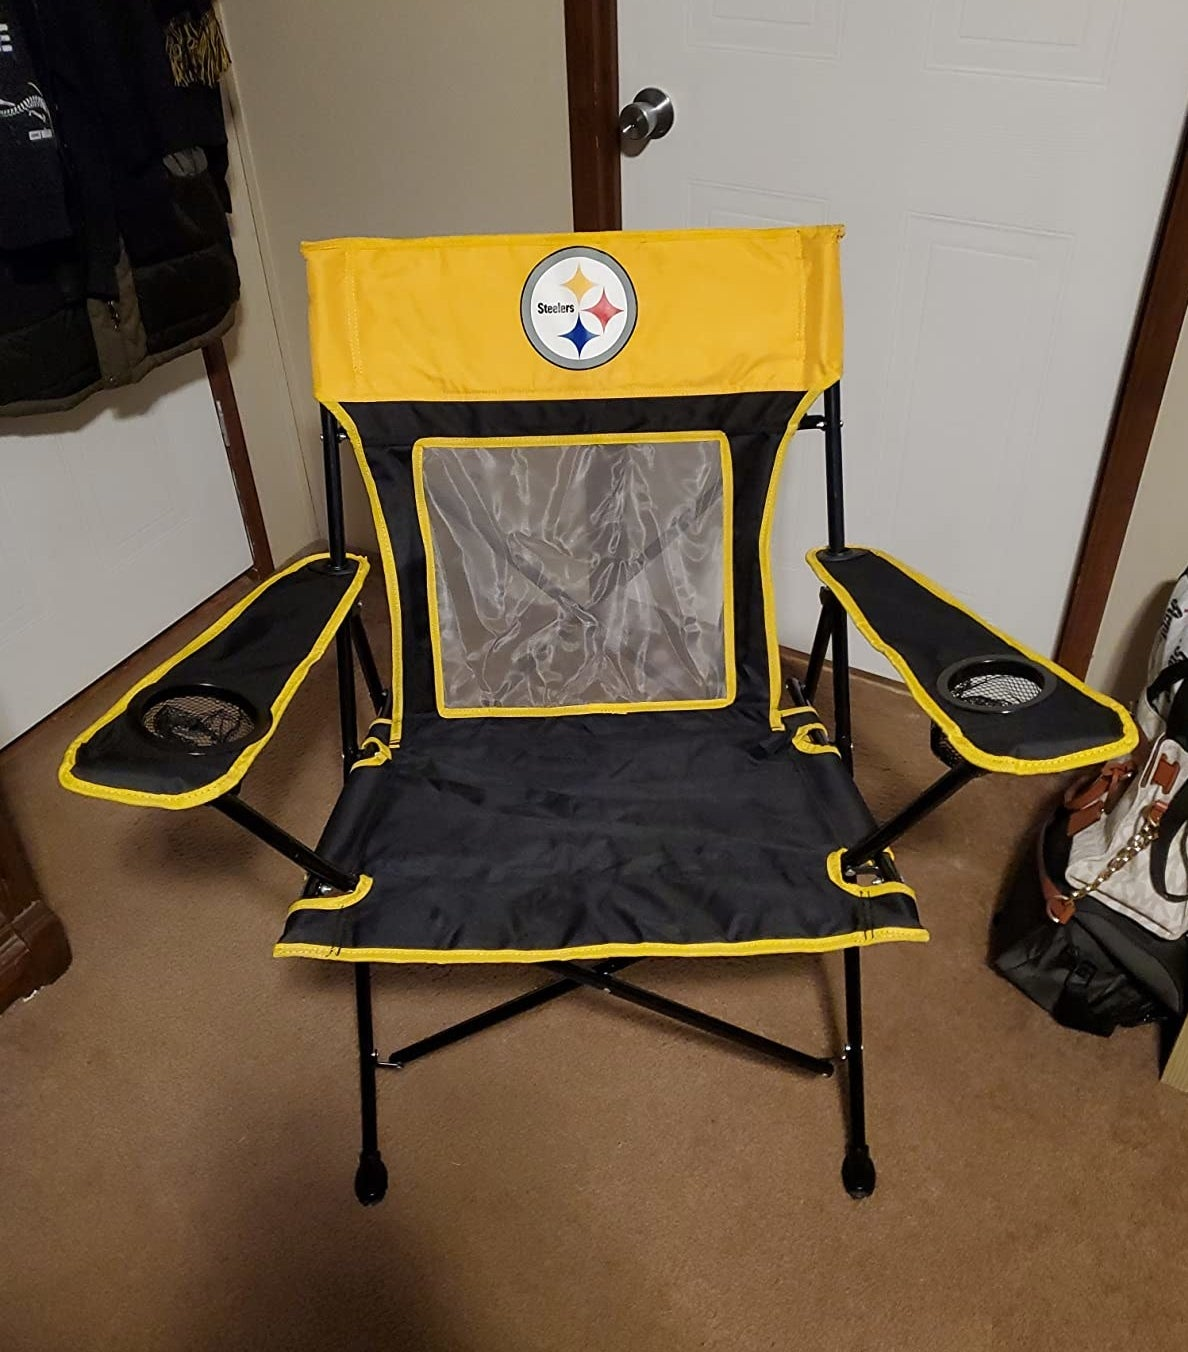 the Steelers chair